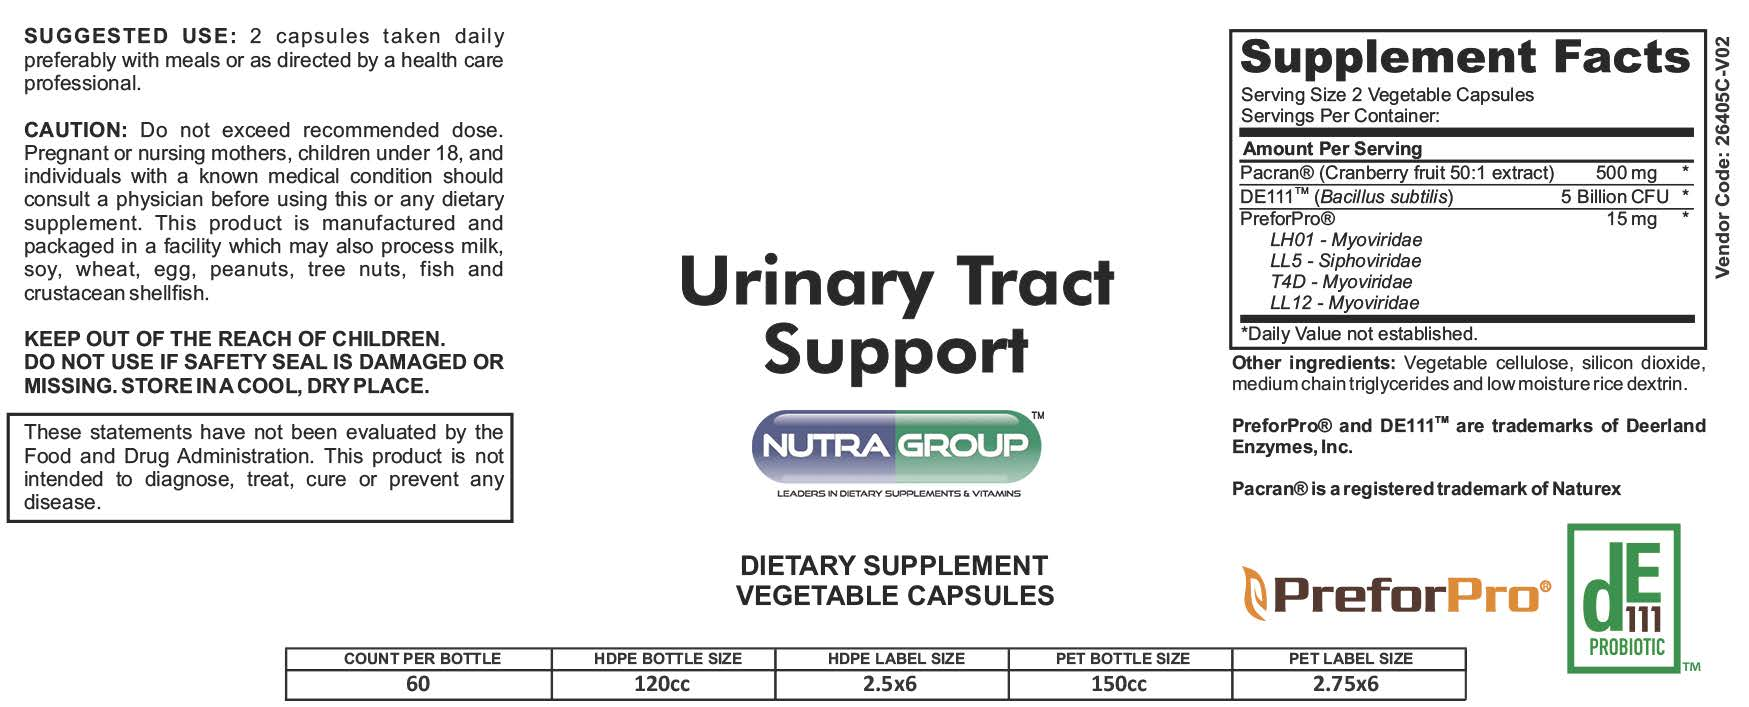 Private Label Urinary Tract Supplement